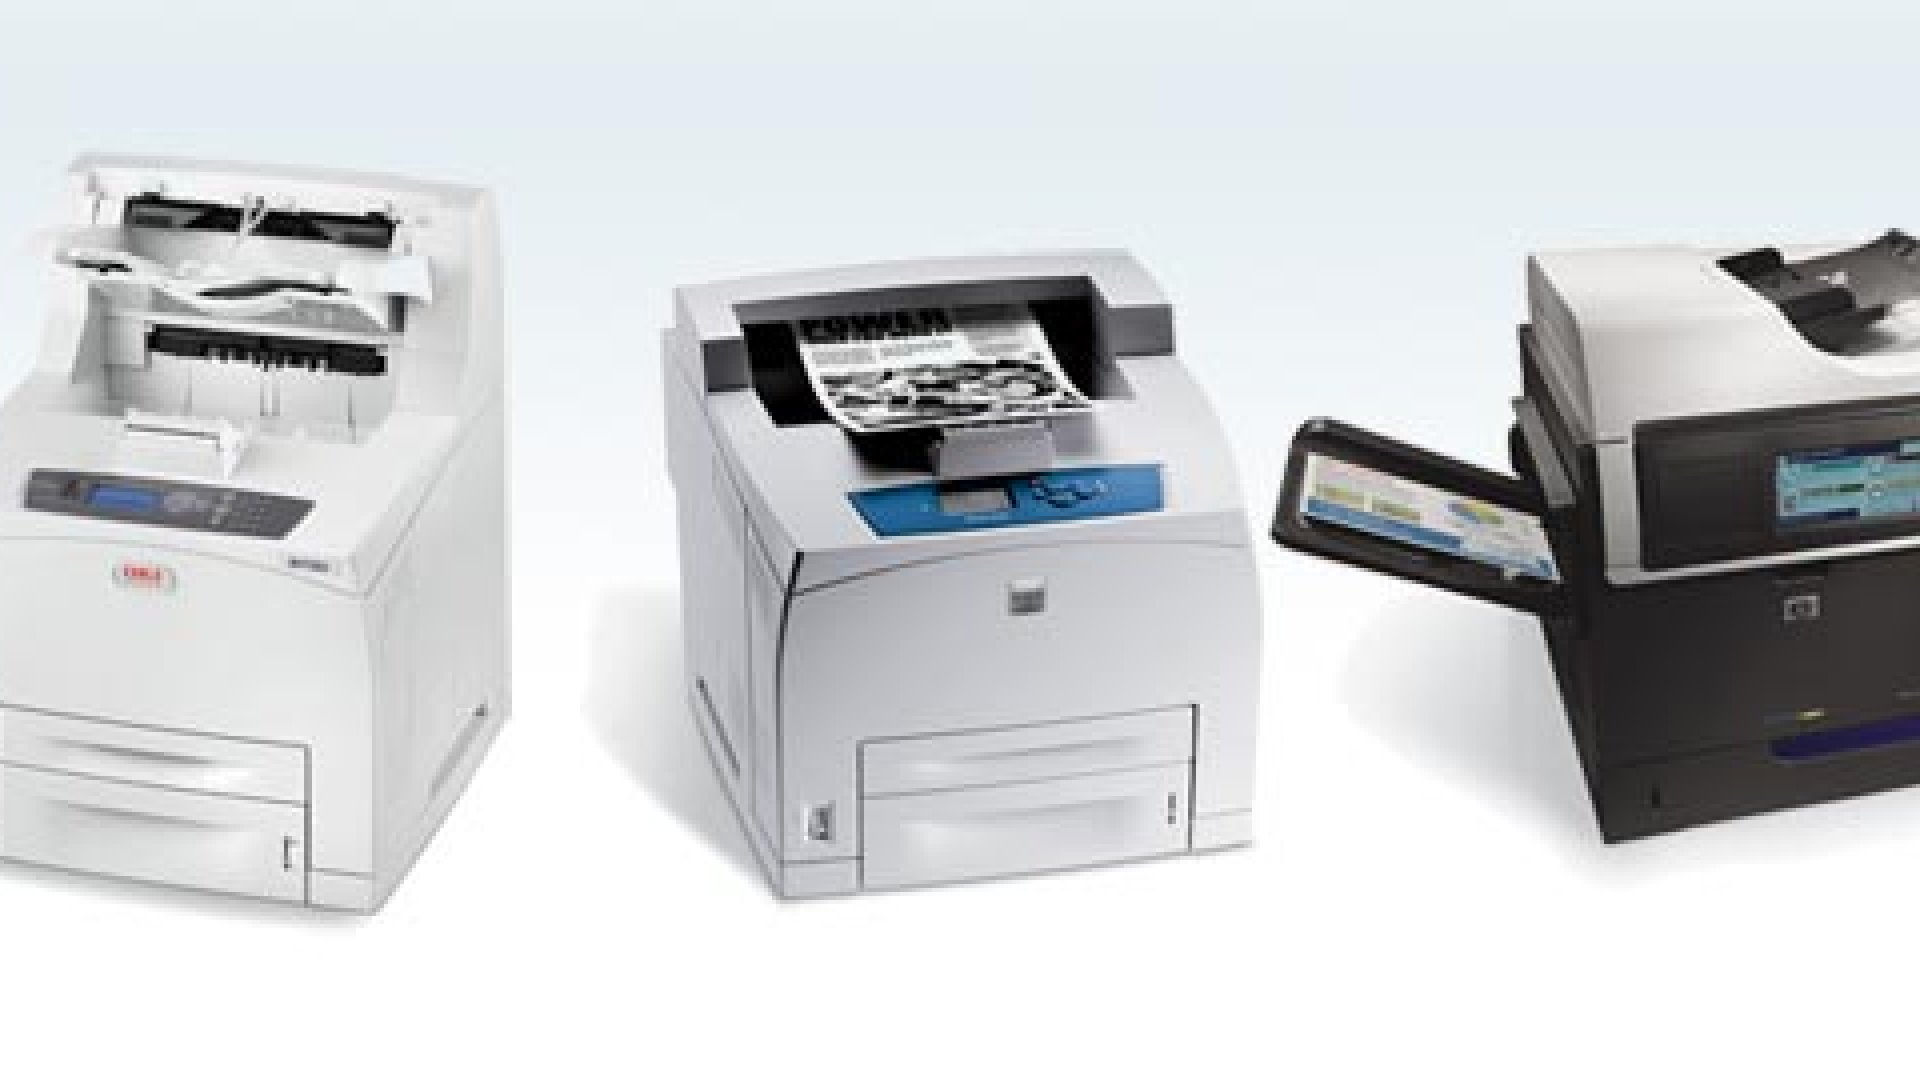 Tired of waiting at the printer? Now there are three speedier options: (from left) the OKI B730DN, the Xerox Phaser 4510/N, and the HP Color LaserJet Enterprise CM4540.